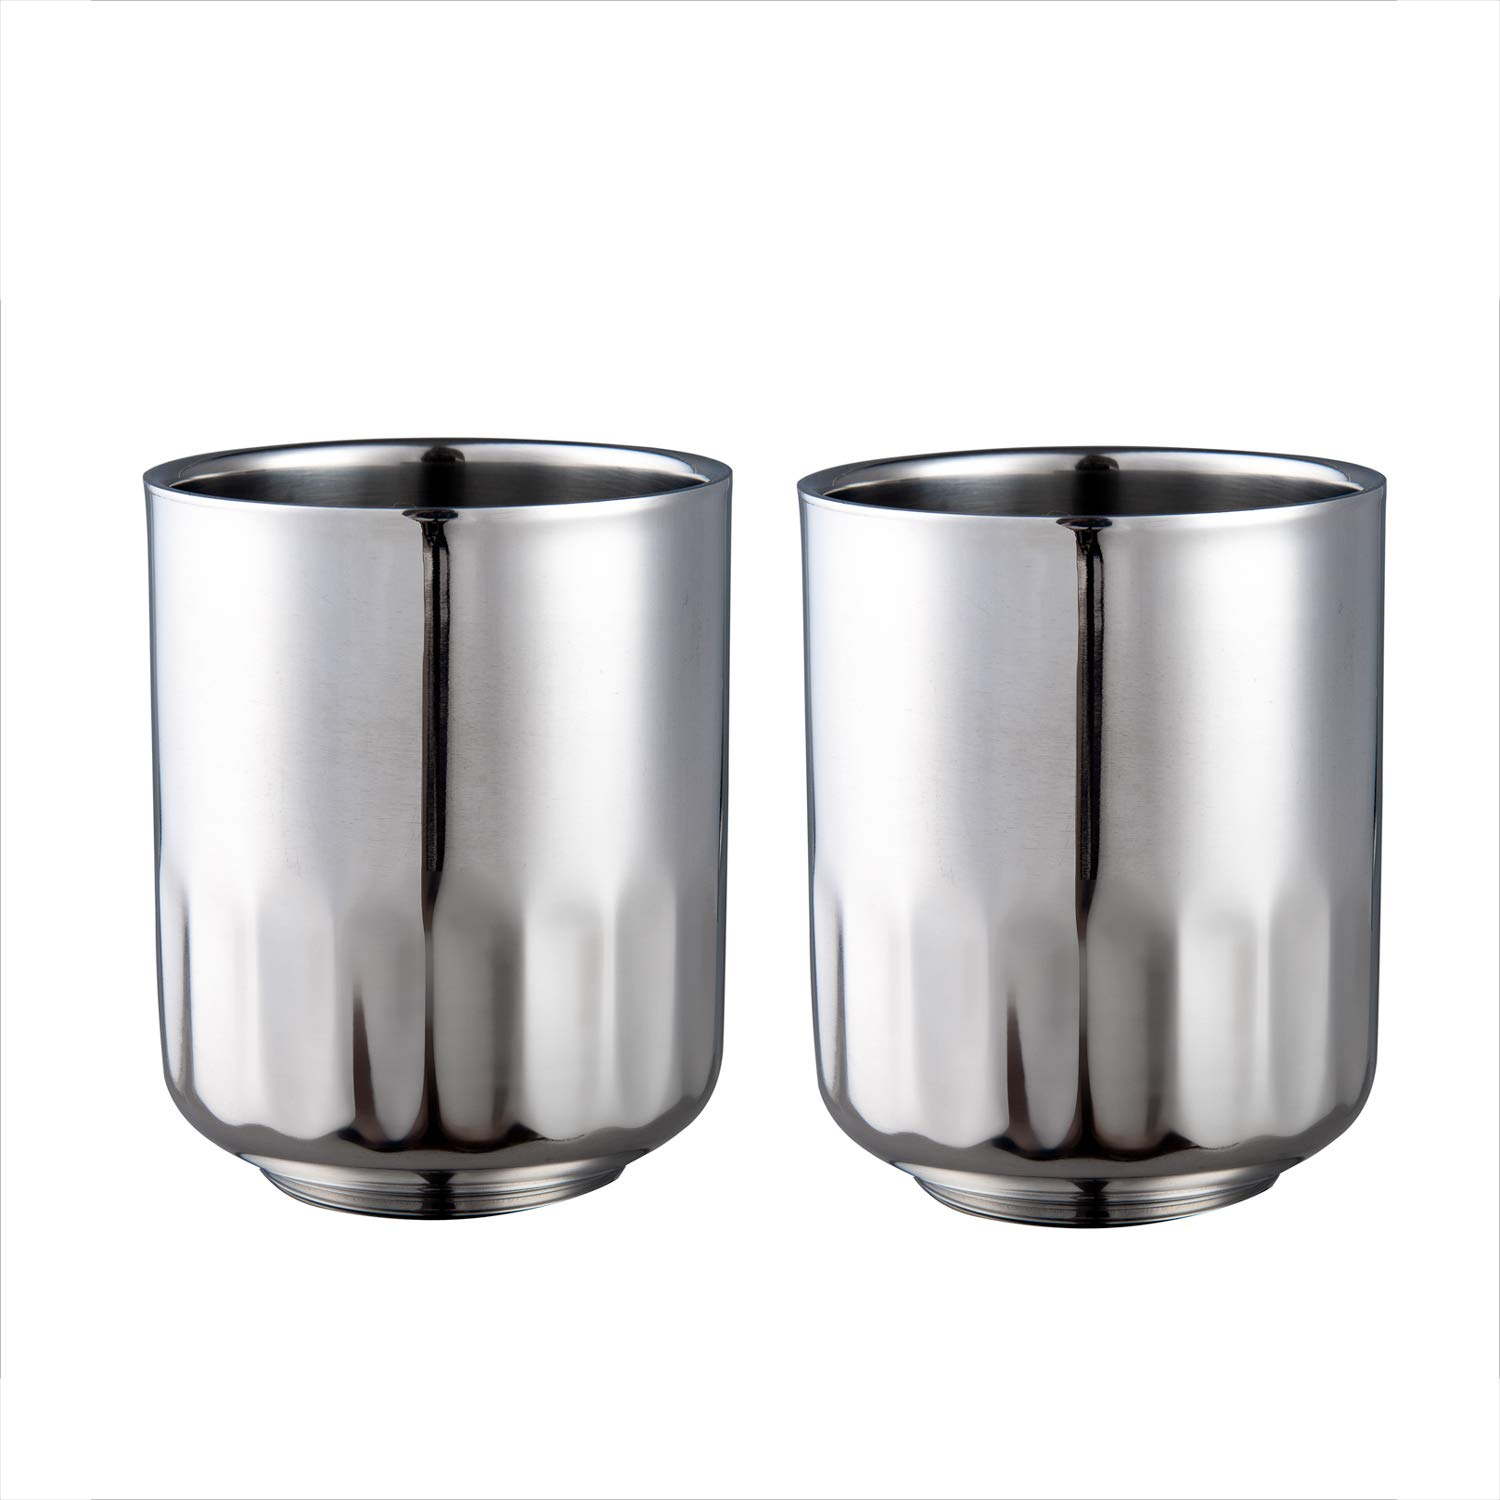 IMEEA Espresso Cups Double Wall Stainless Steel Coffee Tea Cups Demitasse Cups, 7oz/200ml